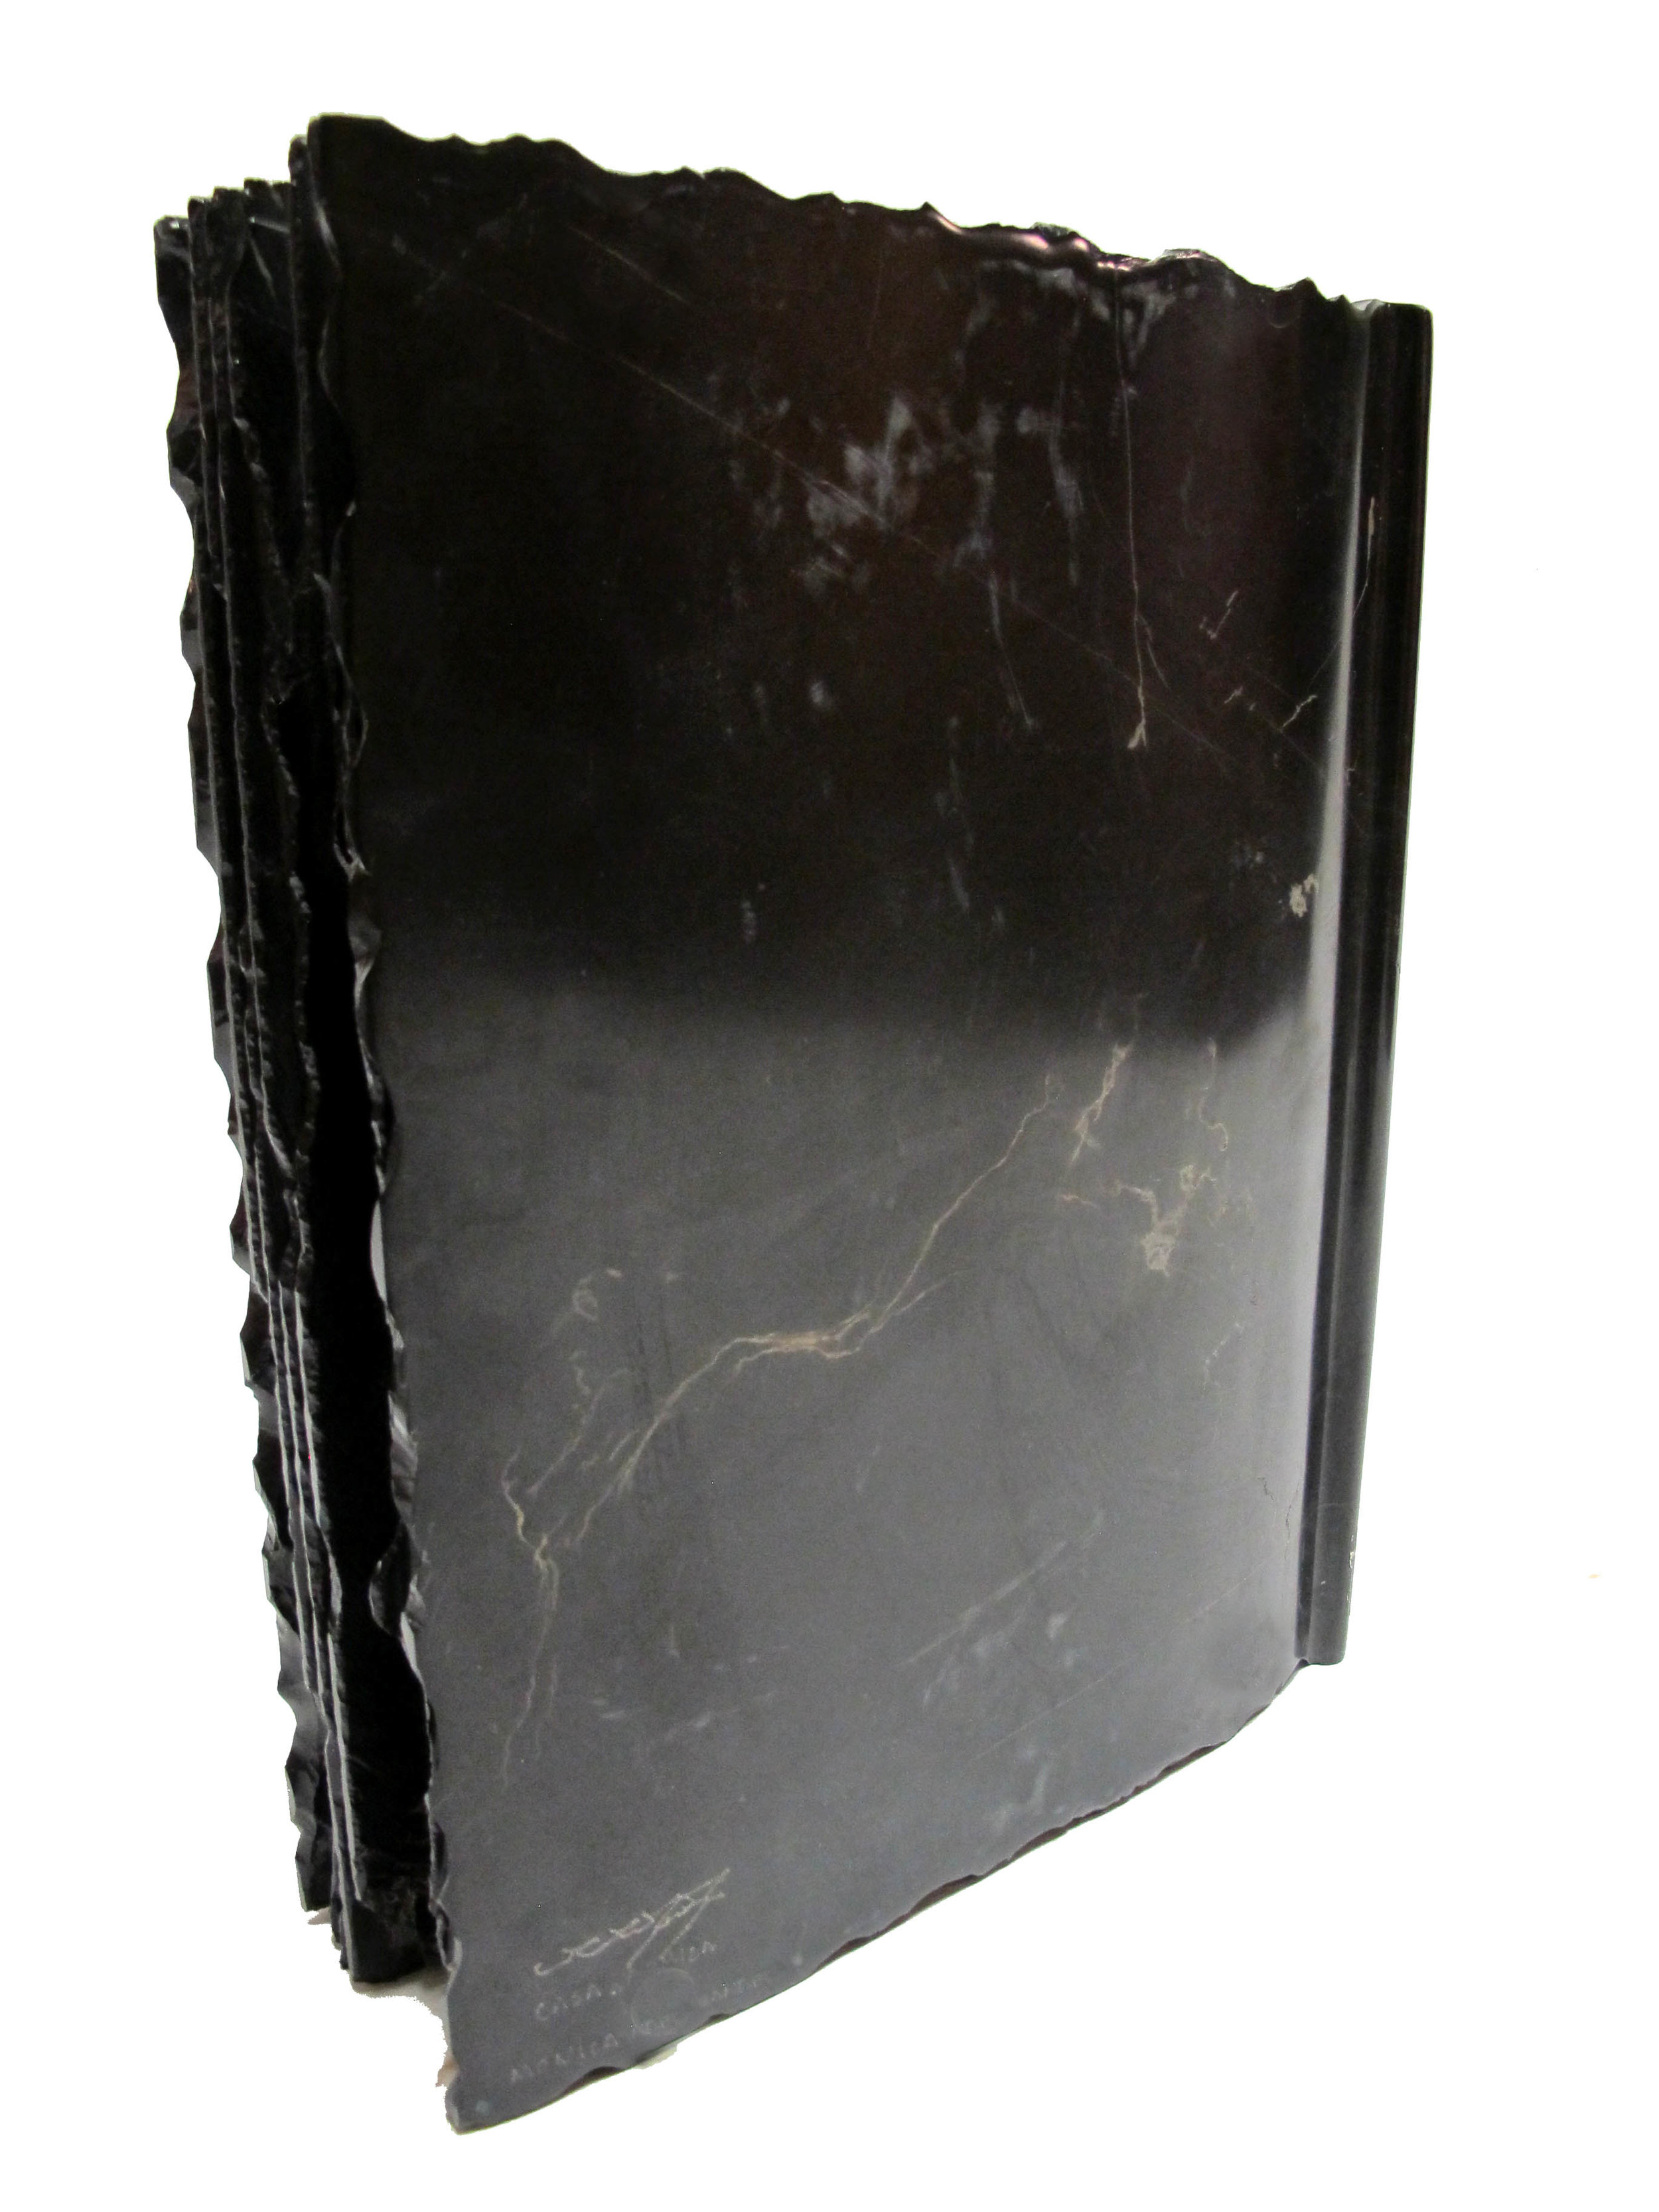 KL_Large Book_black marble 5.jpg